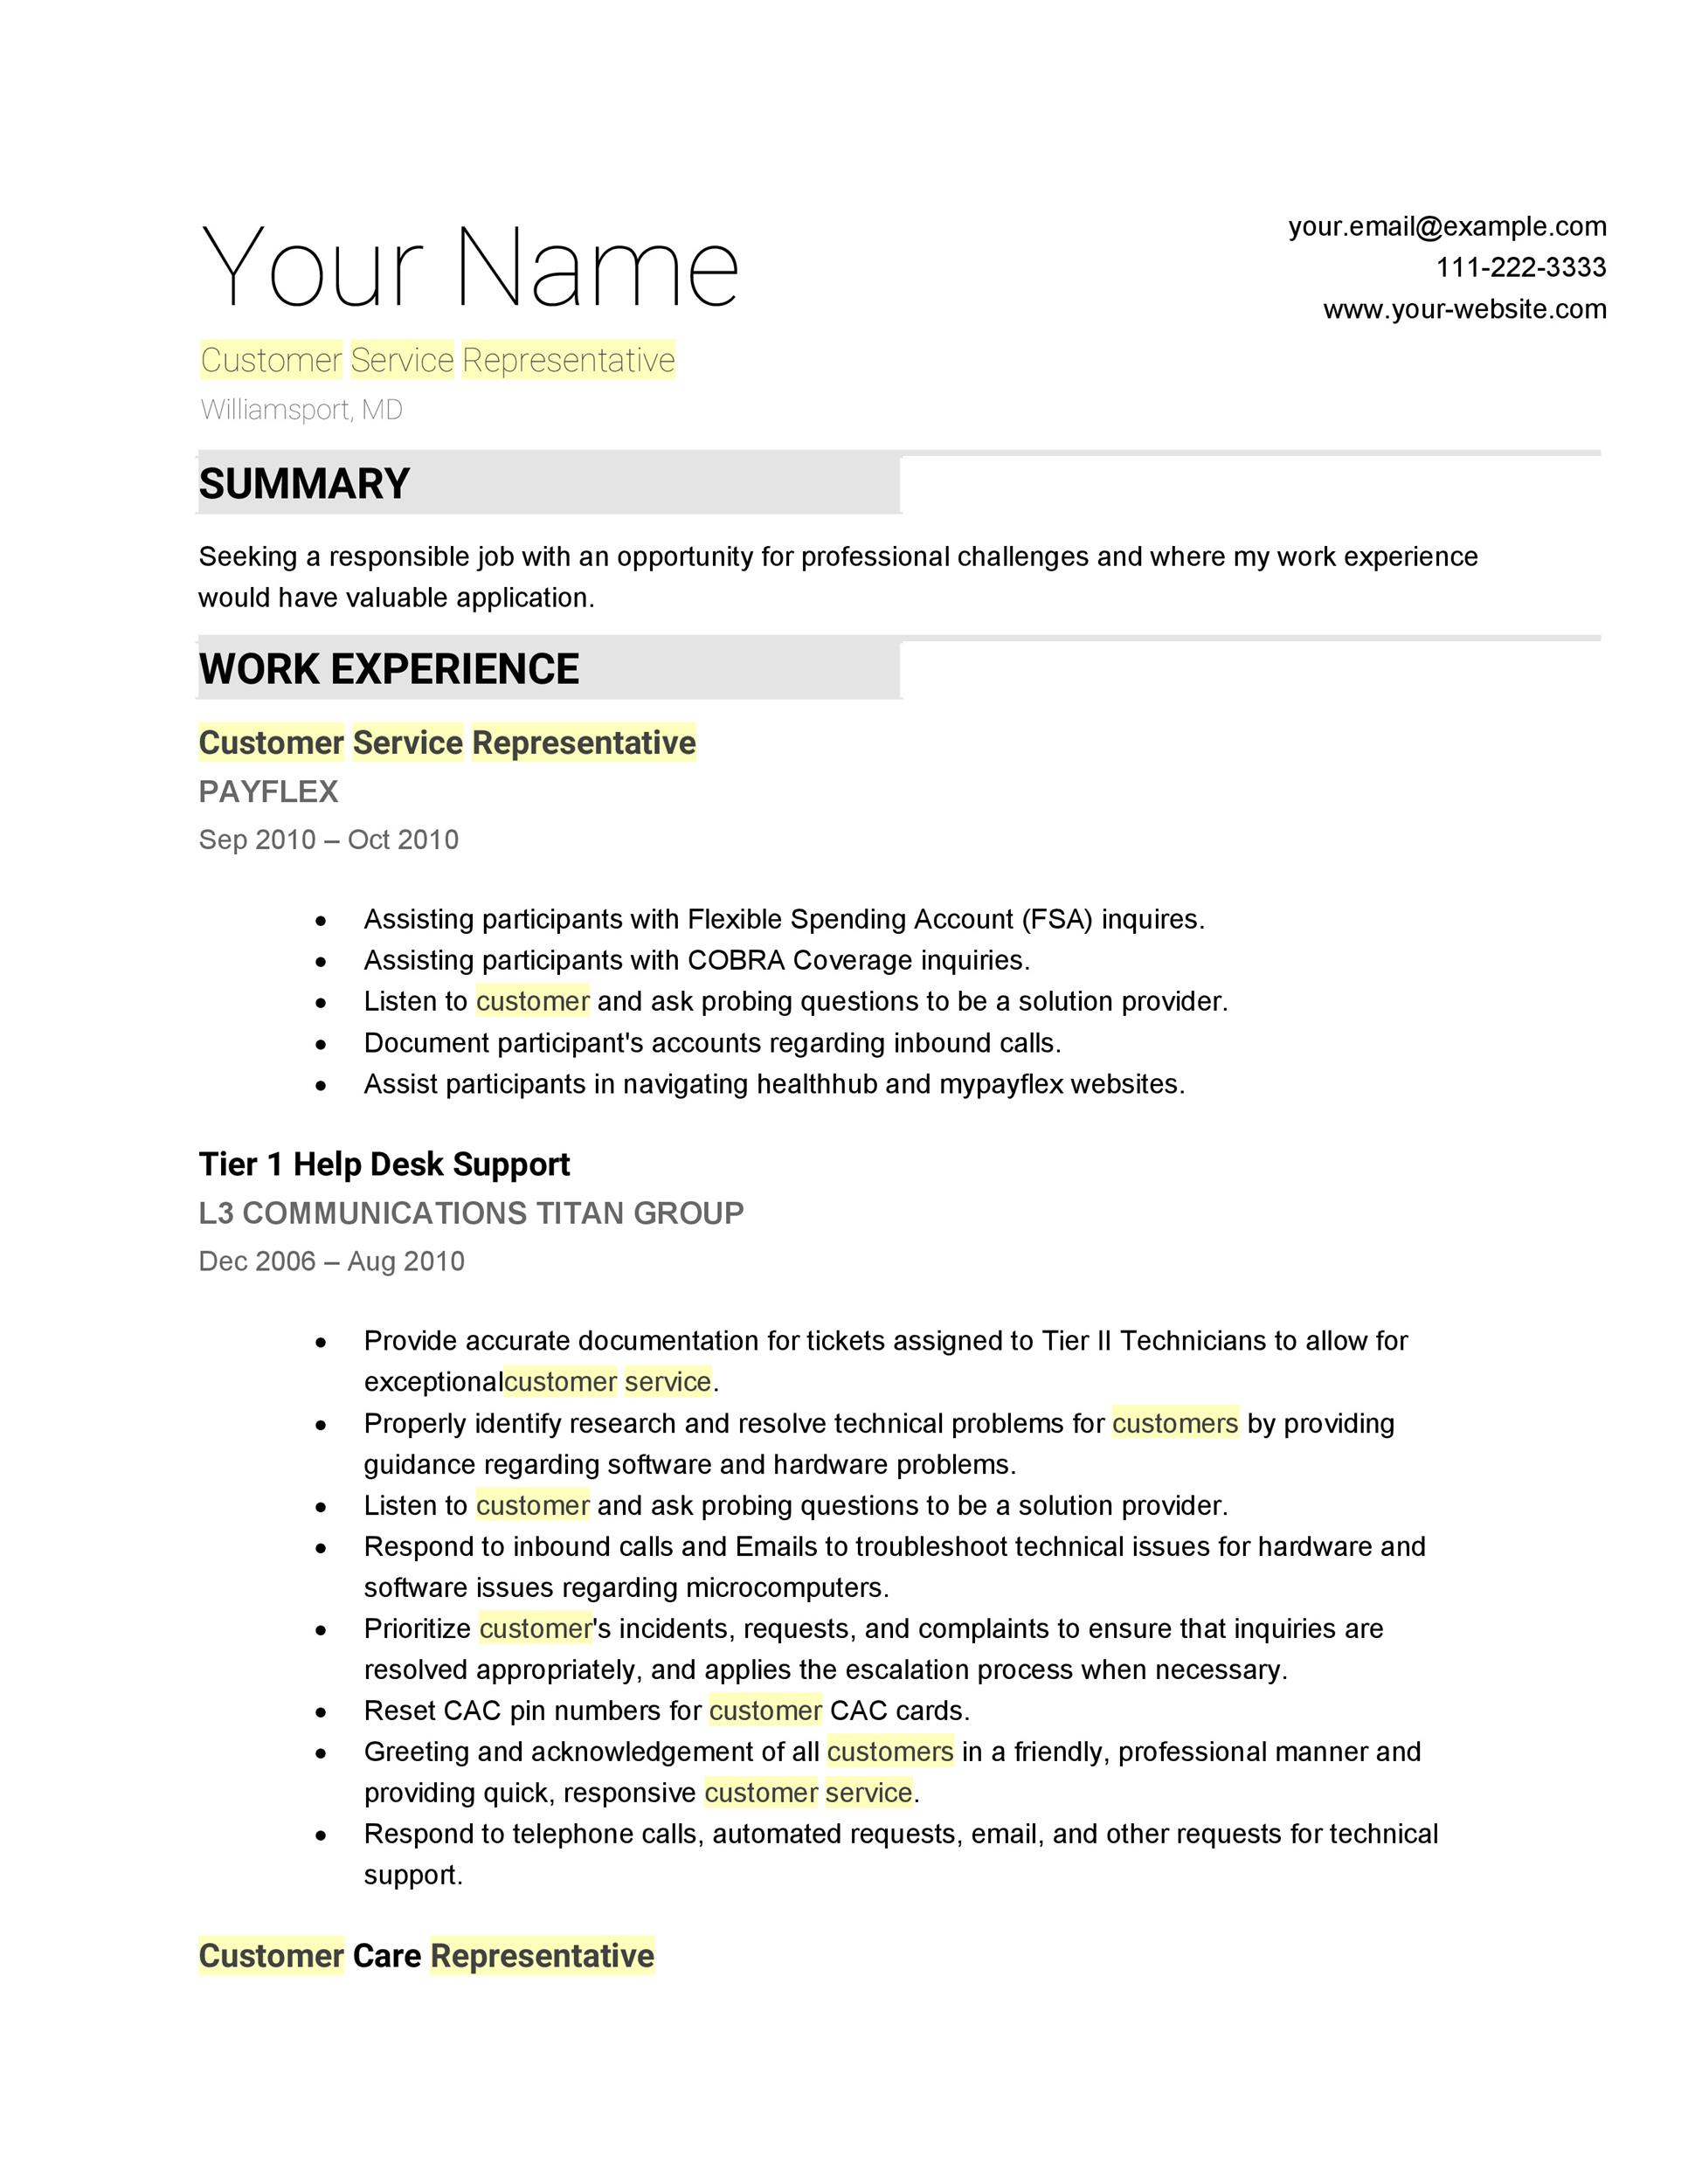 customer service resume template 10. Resume Example. Resume CV Cover Letter